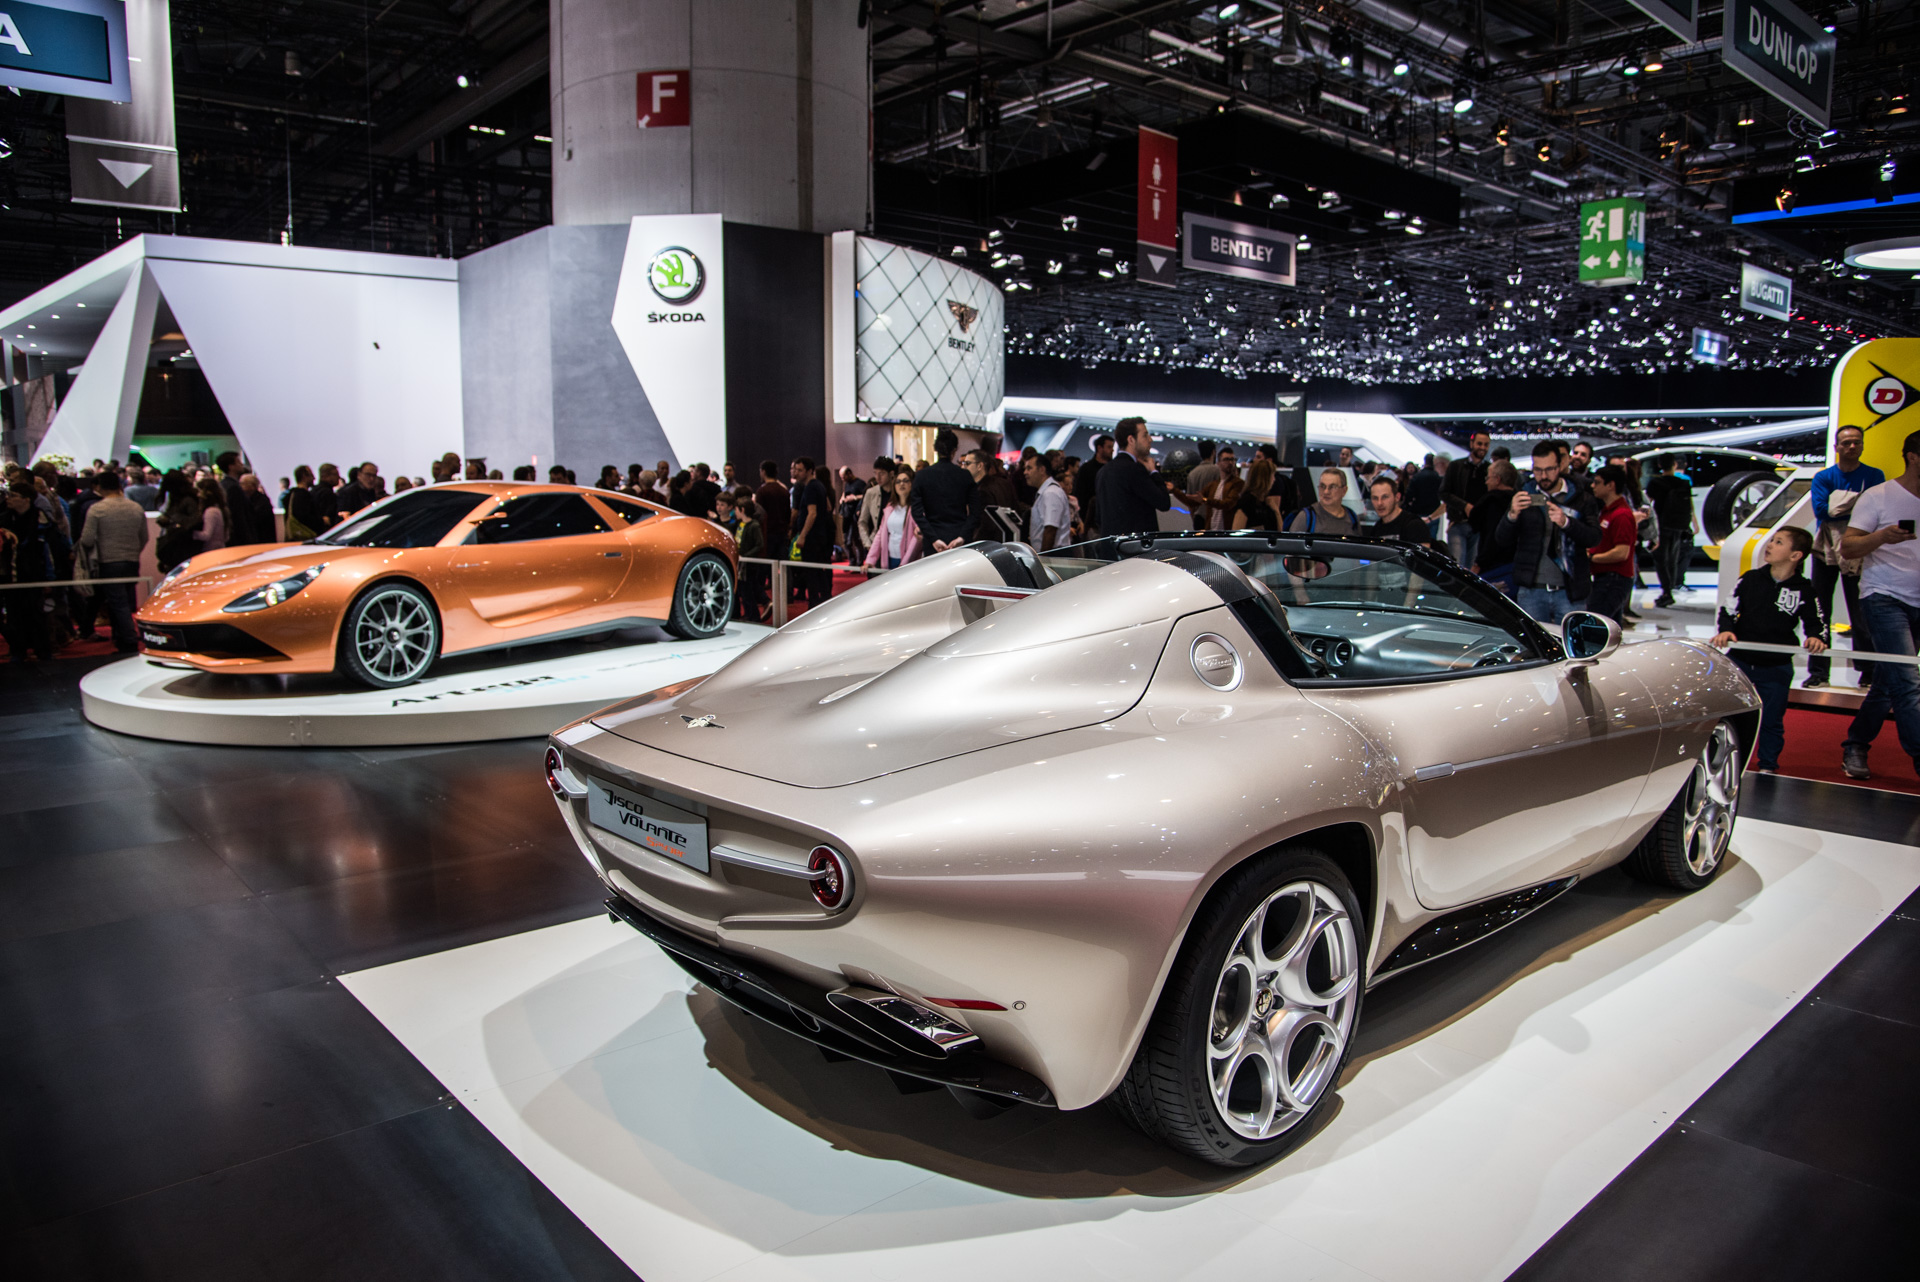 geneva-international-motor-show-igor-sinitsin-112